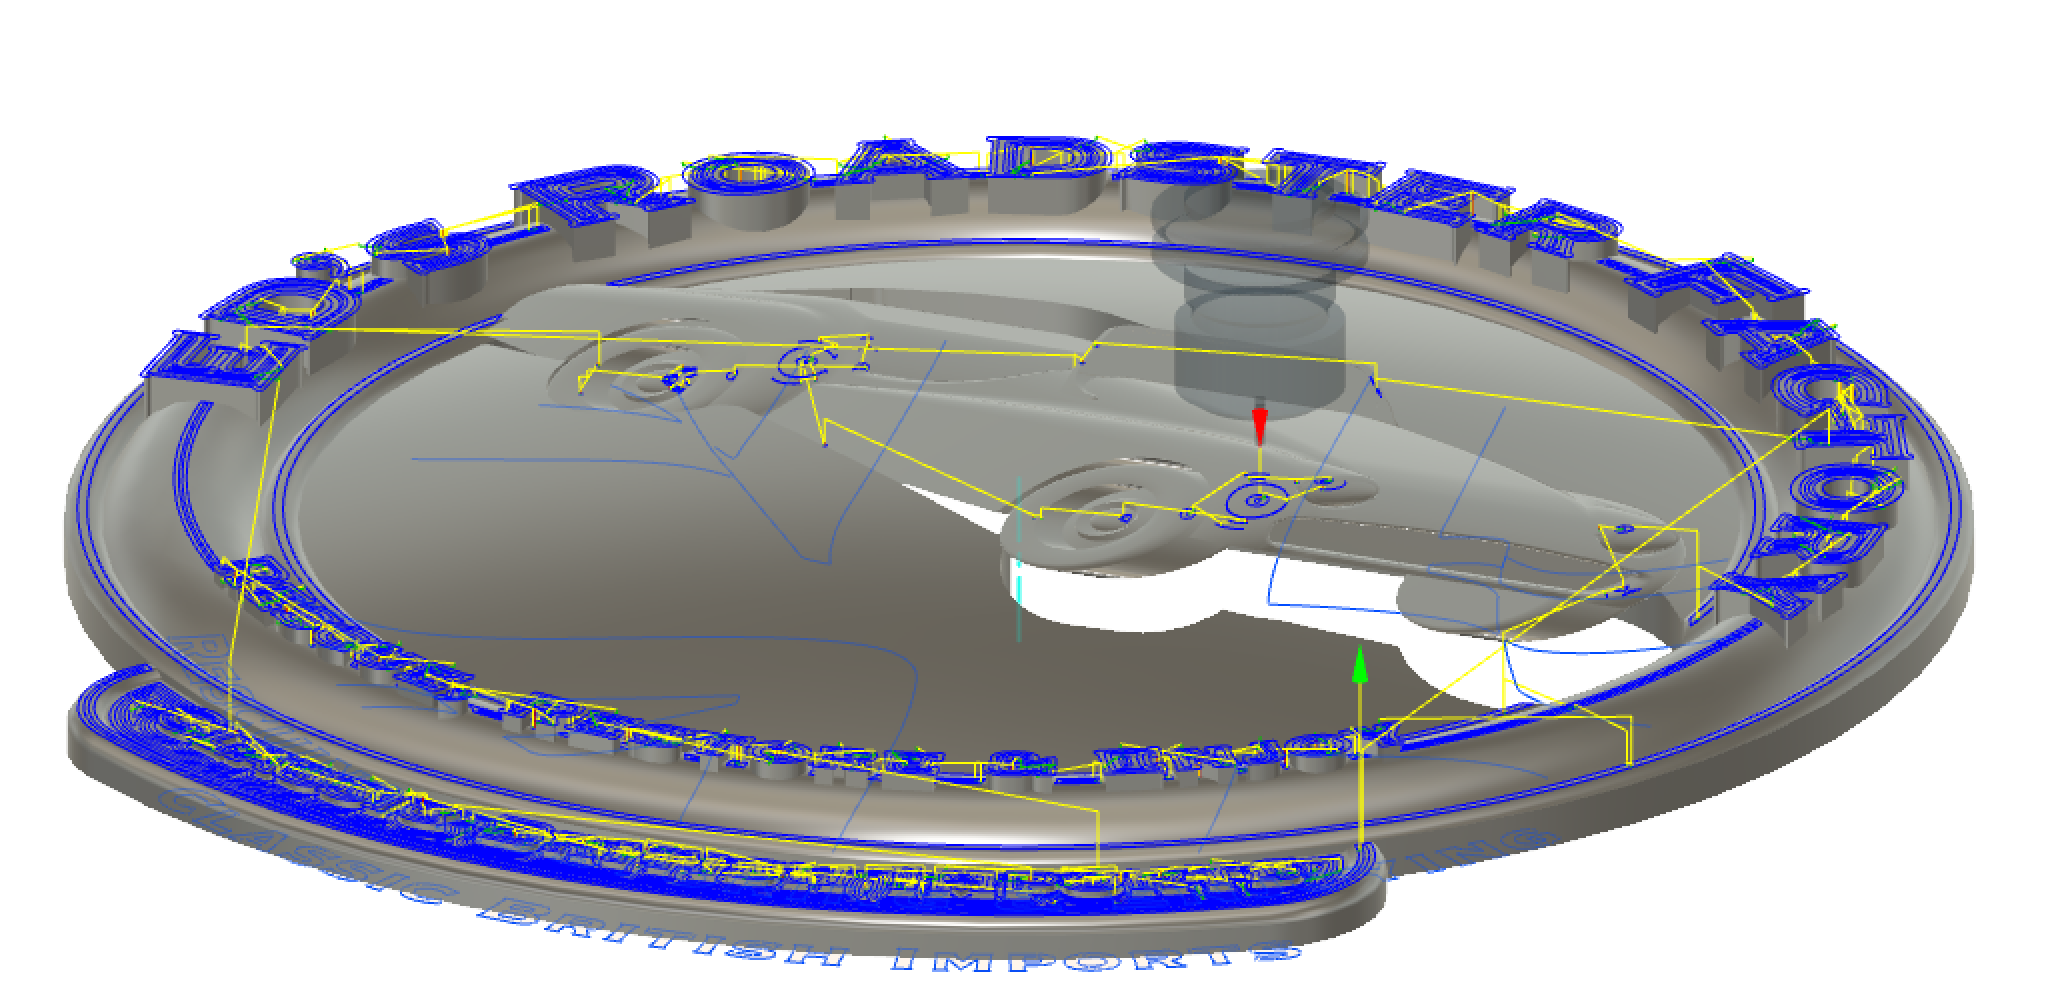 Horizontal cnc path from Autodesk Fusion 360